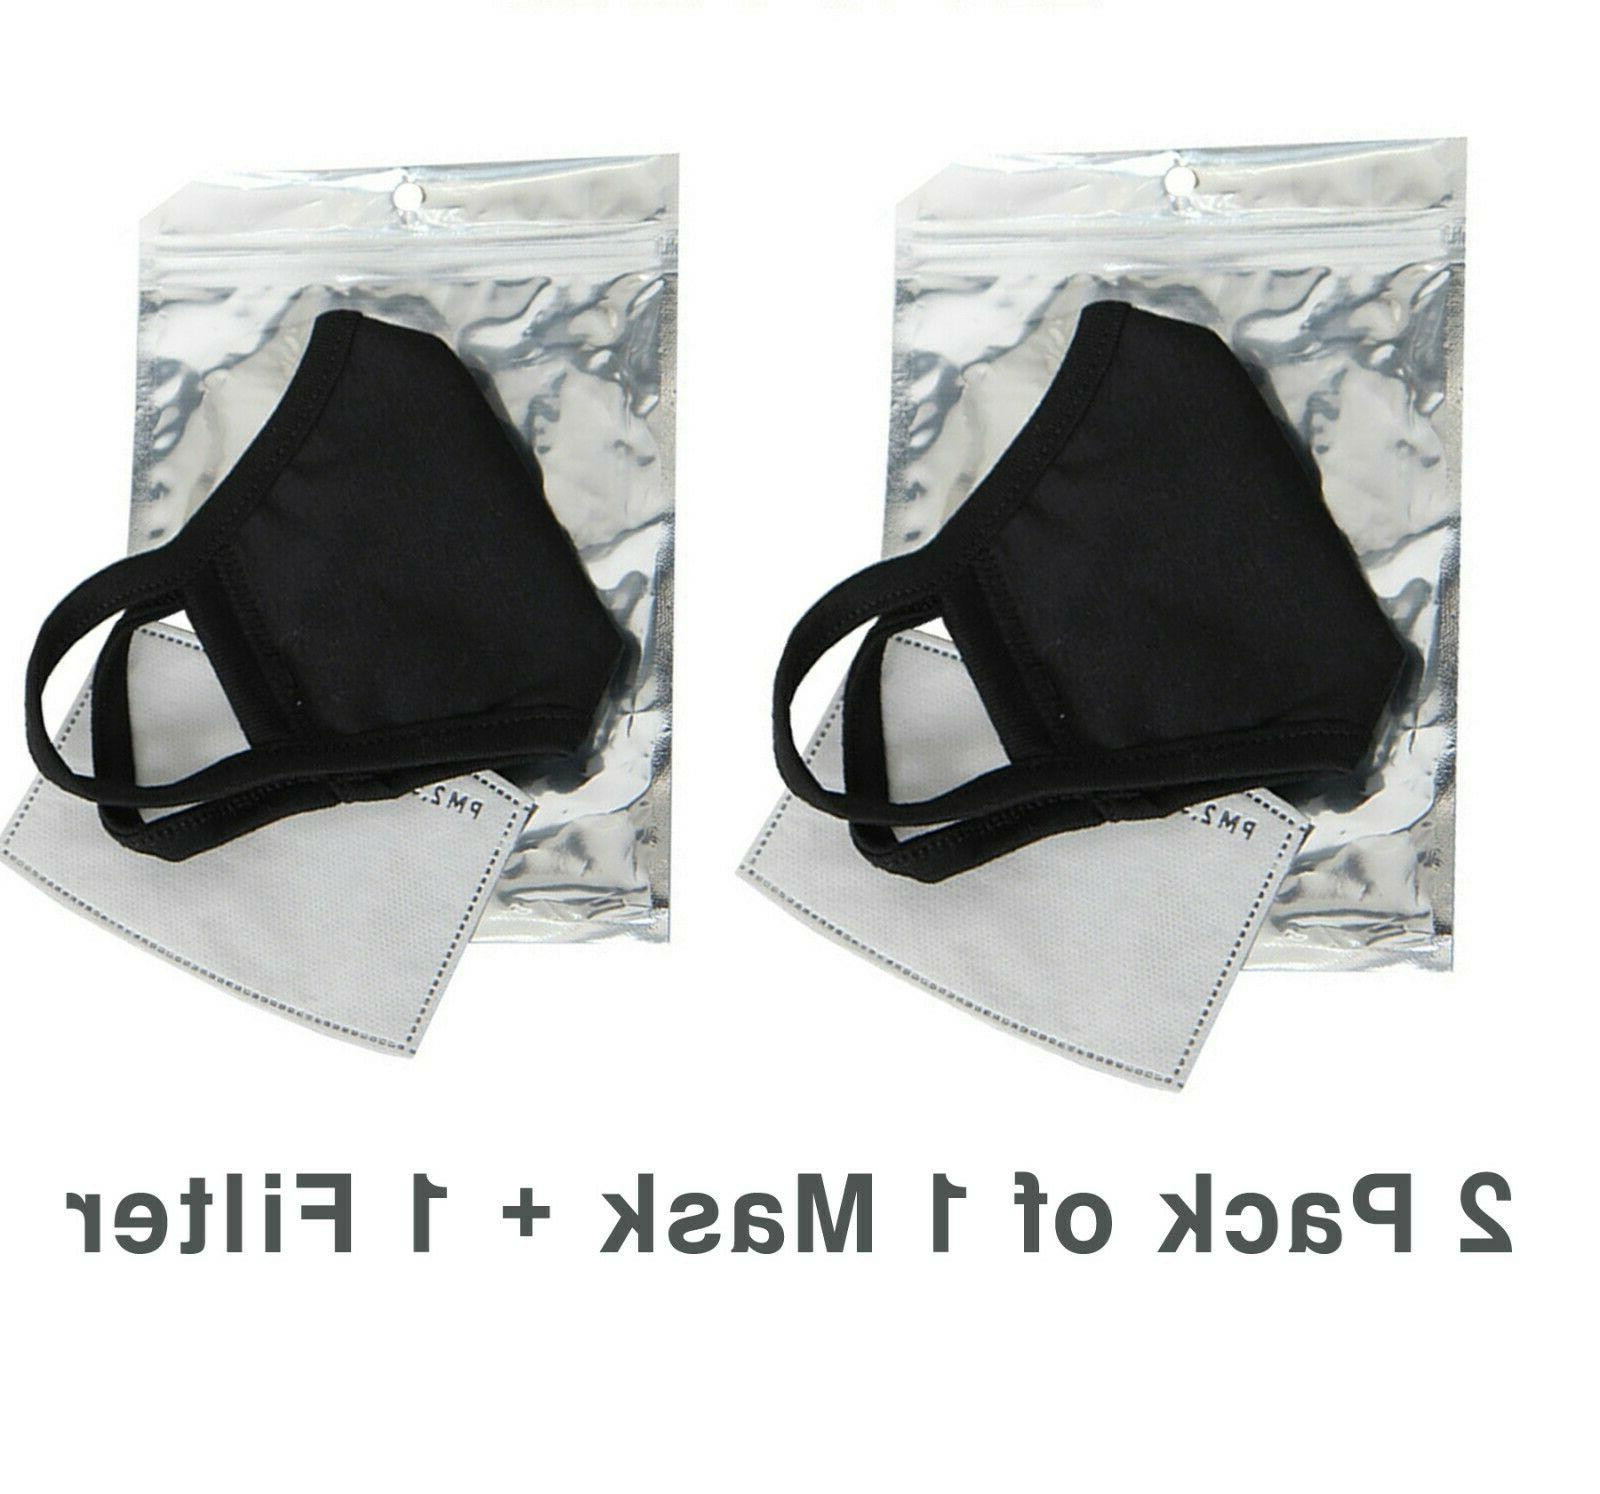 2 Pack of Protective 3D Mask with Filter Pocket and Carbon Filters